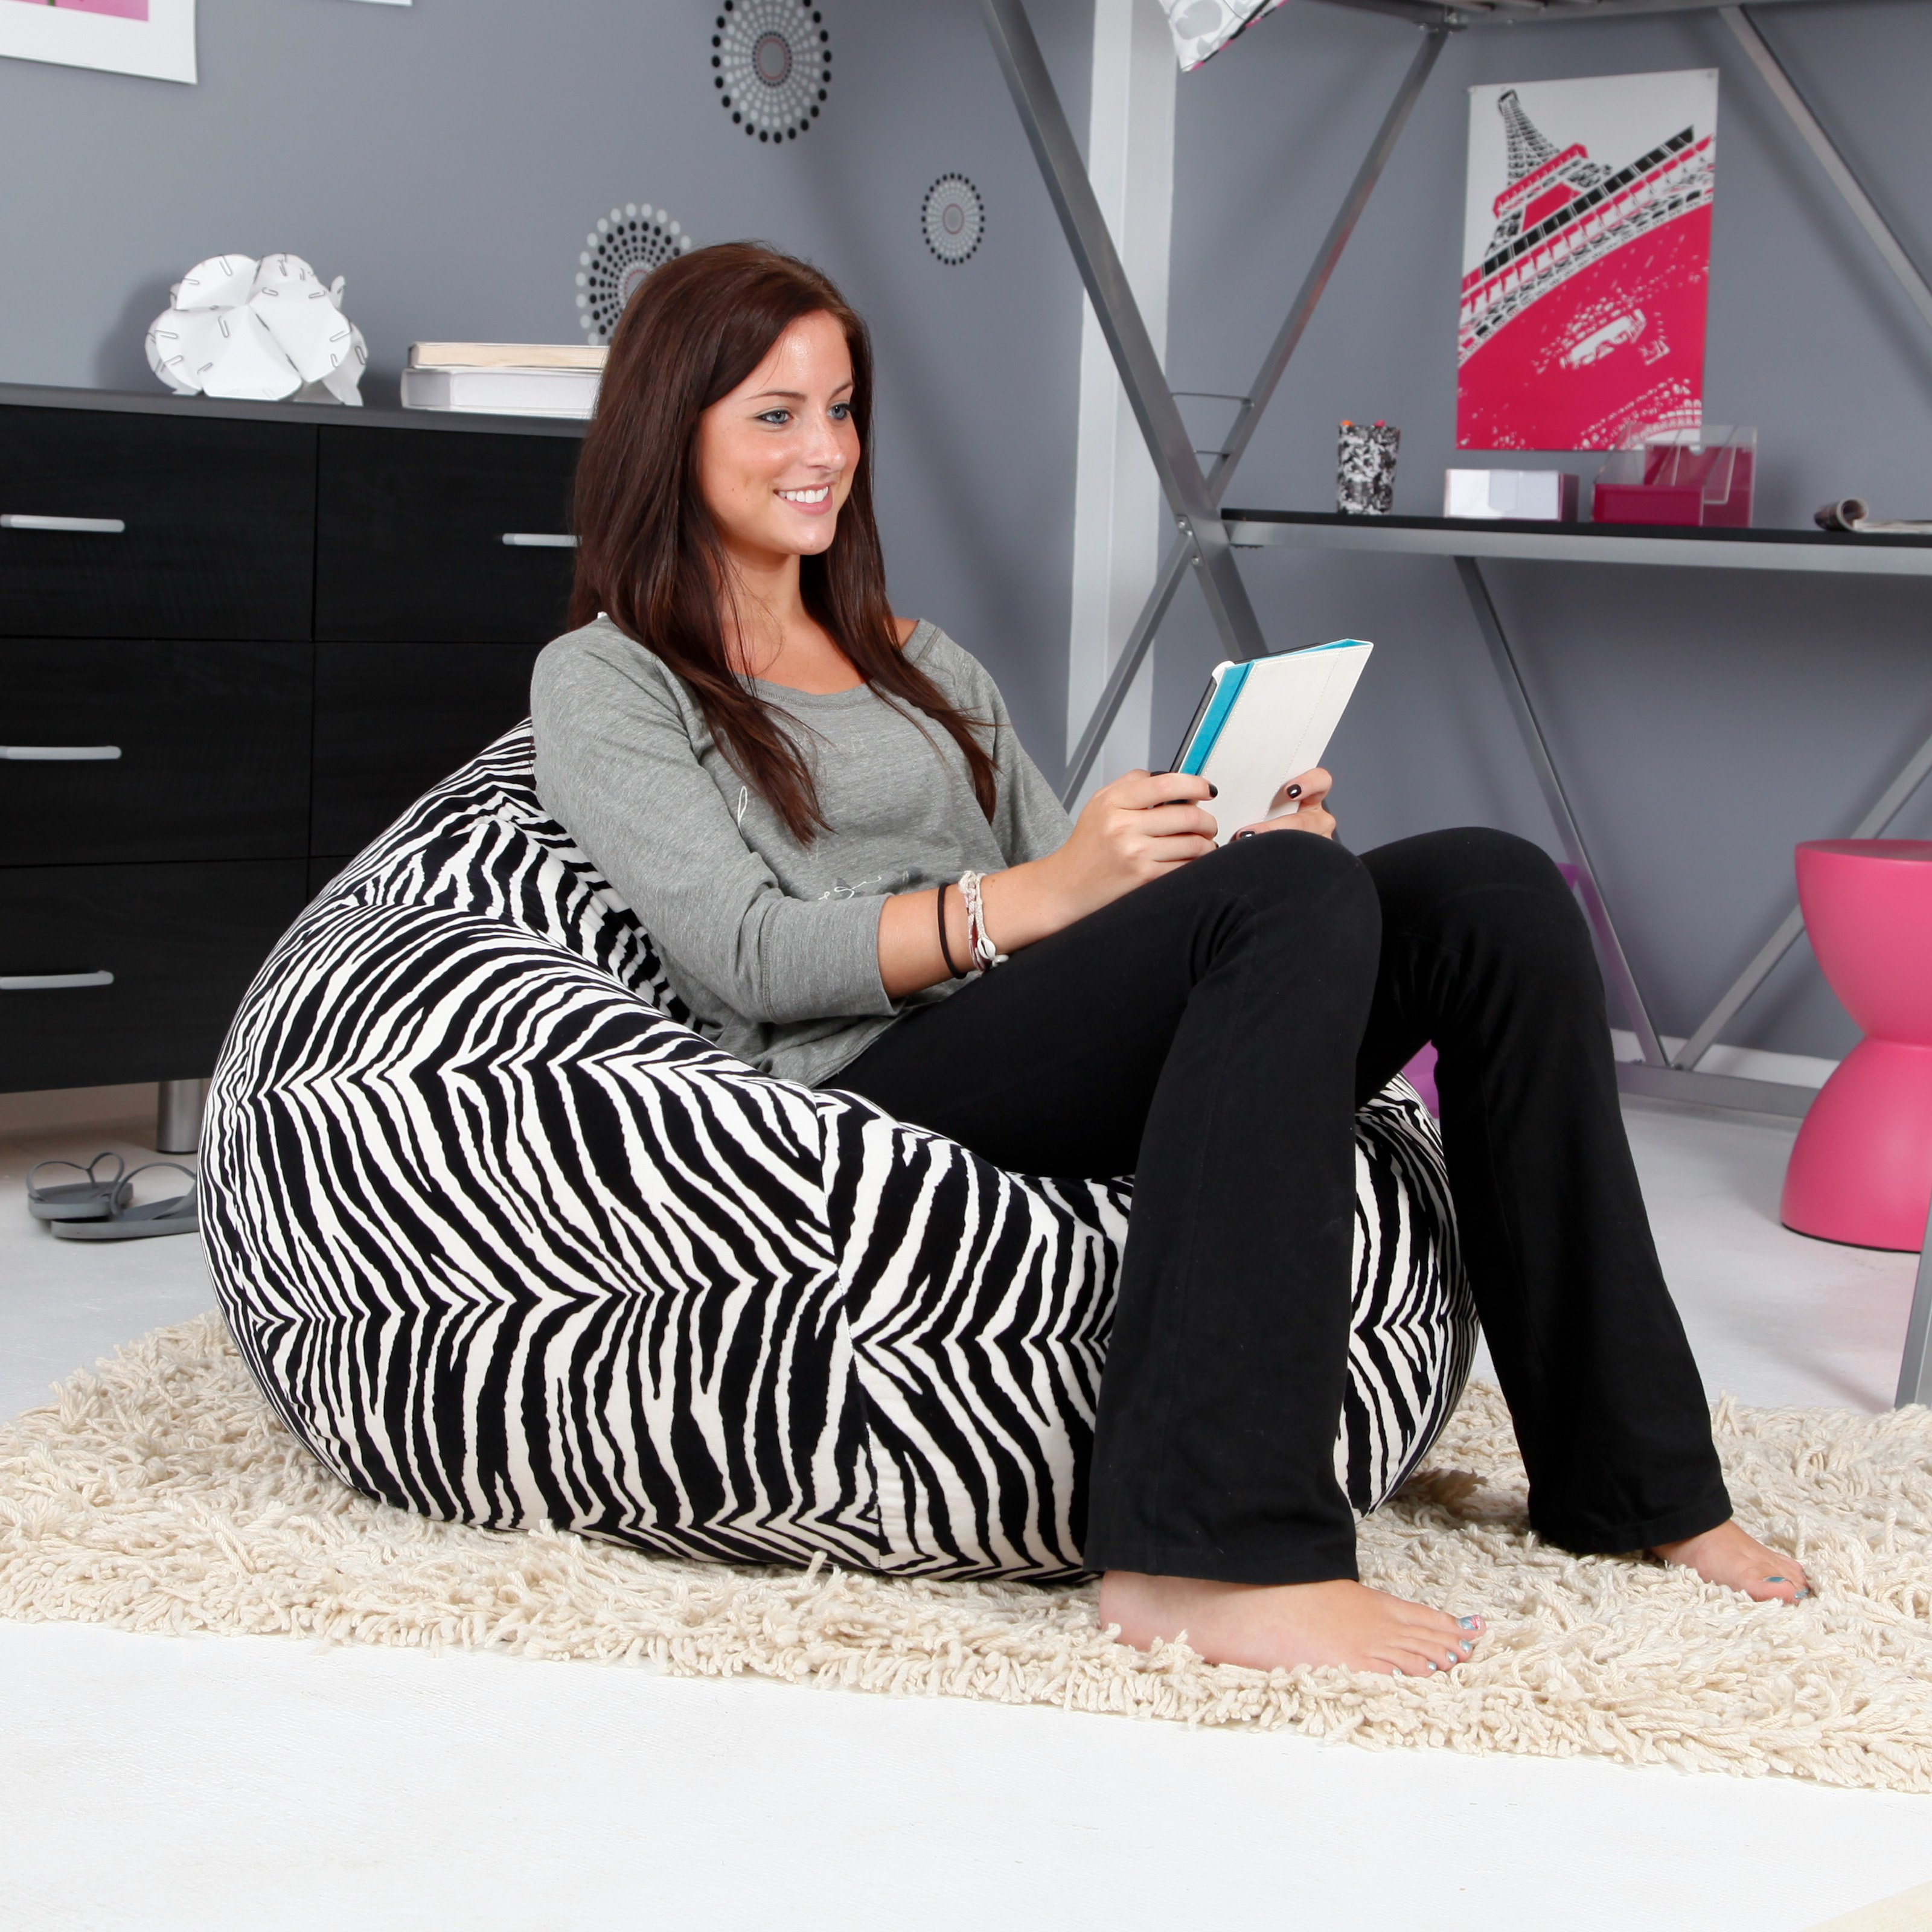 Phenomenal Gold Medal Large 128 Zebra Print Microsuede Bean Bag Ocoug Best Dining Table And Chair Ideas Images Ocougorg